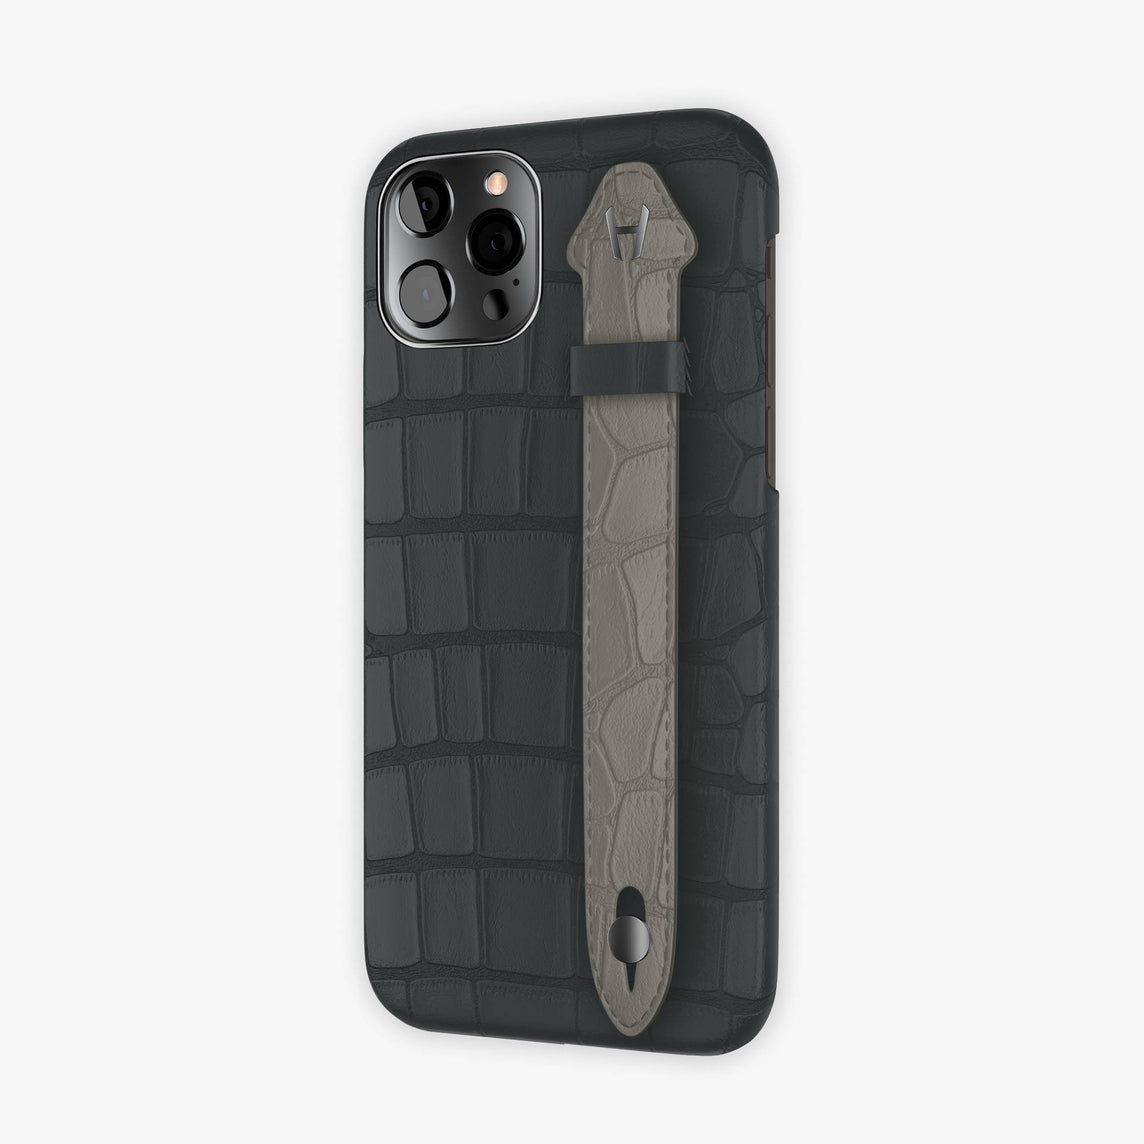 Alligator Side Finger Case iPhone 12 & iPhone 12 Pro | Anthracite/Grey Pearl  -Black